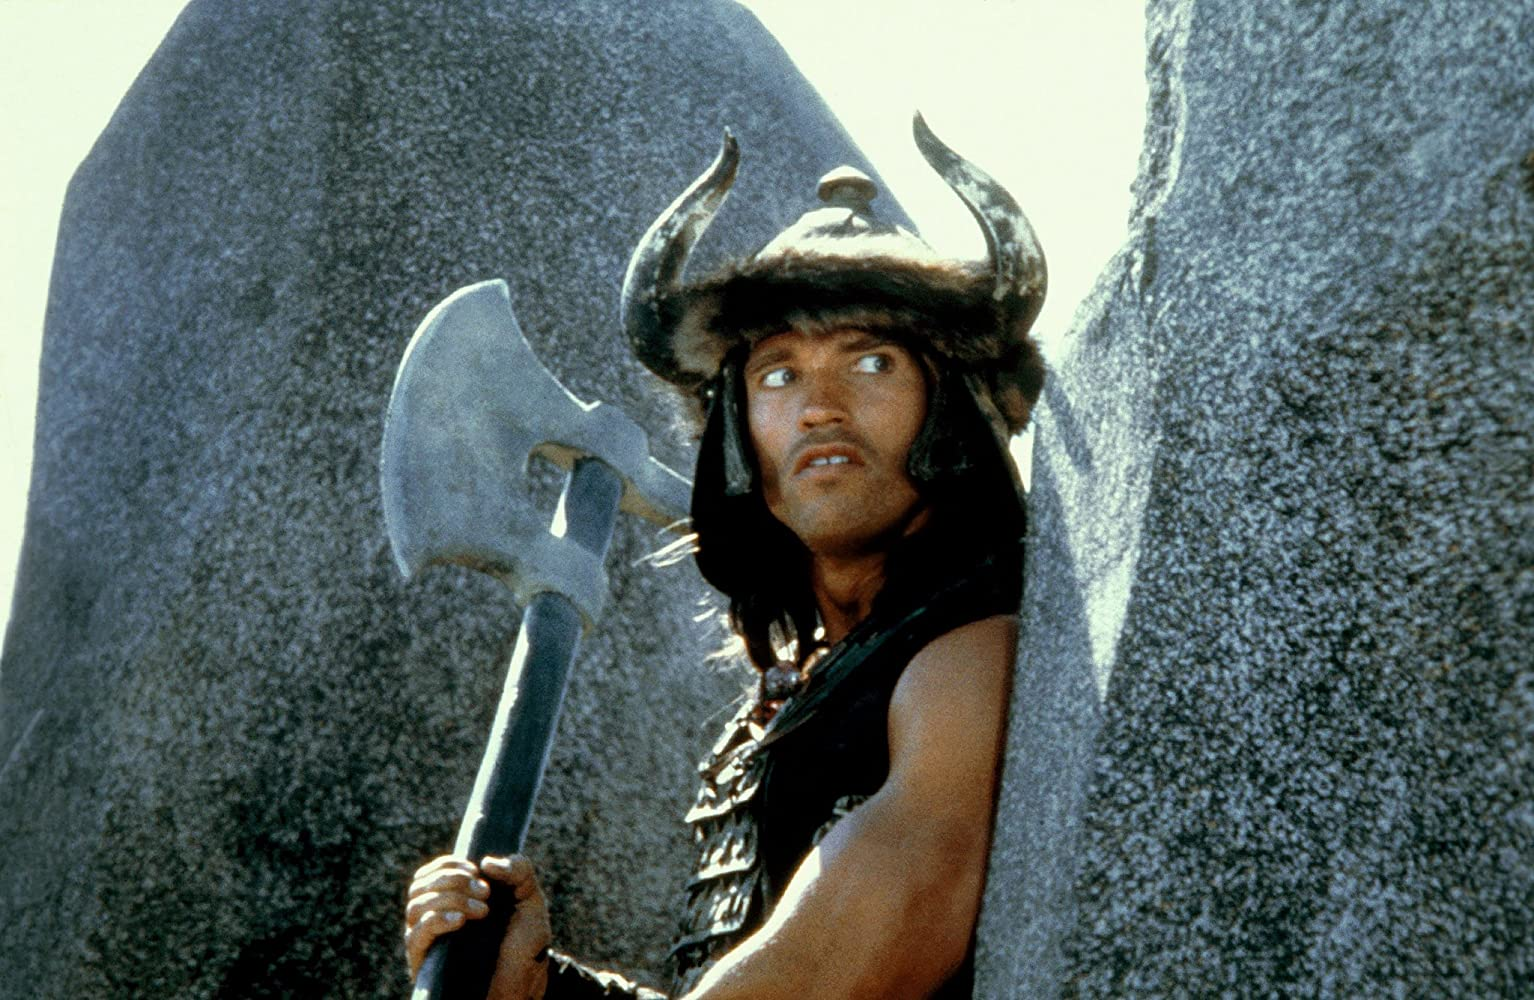 REVIEW: CONAN THE BARBARIAN (1982) | kevinfoyle